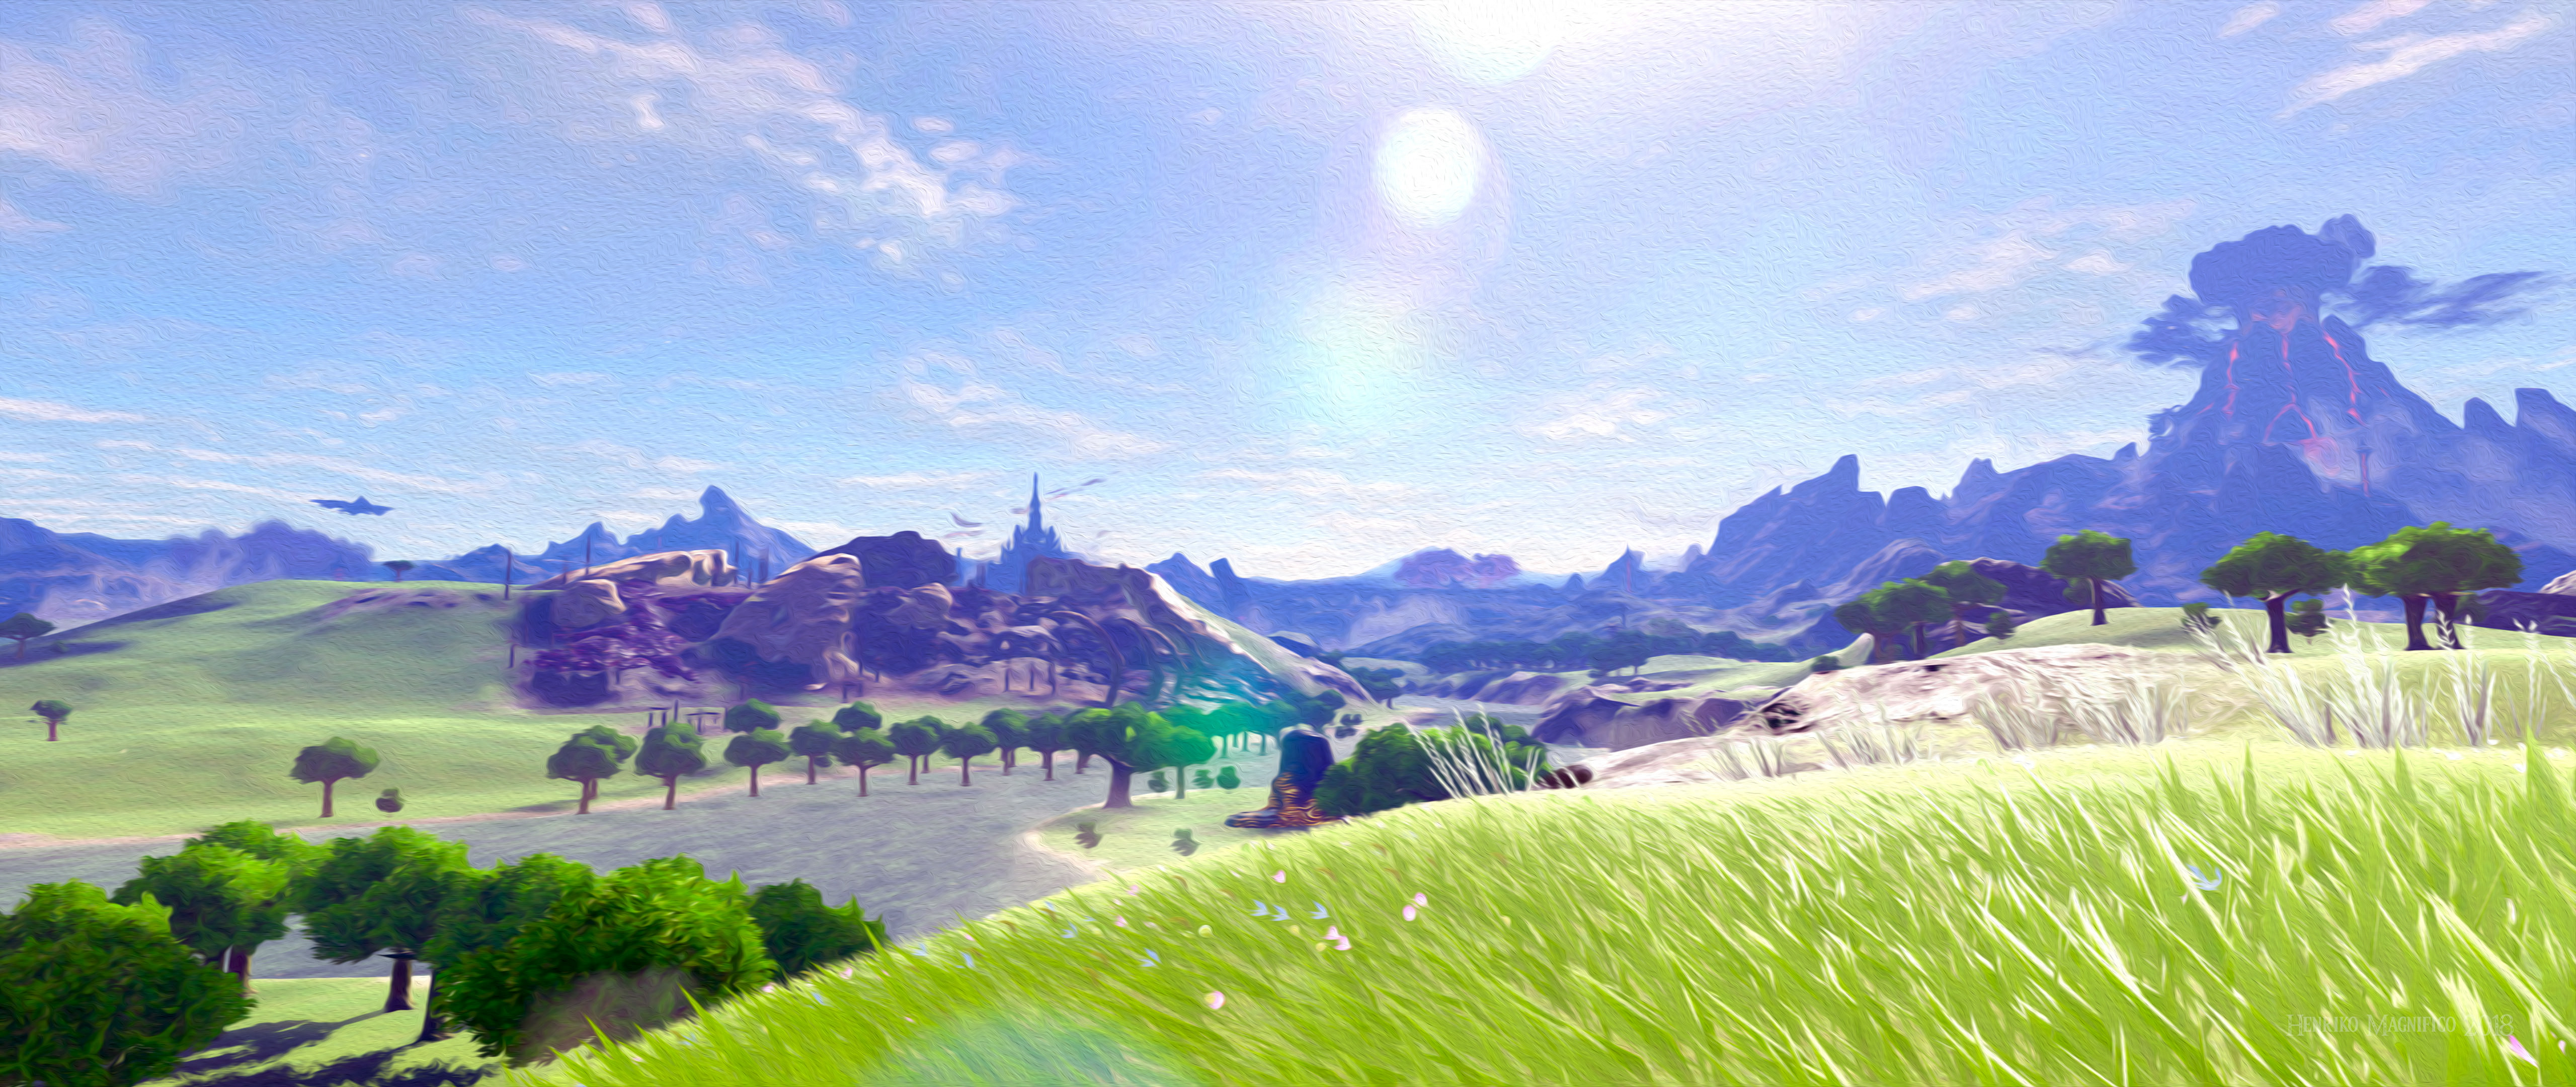 4k Breath Of The Wild 301611 Hd Wallpaper Backgrounds Download